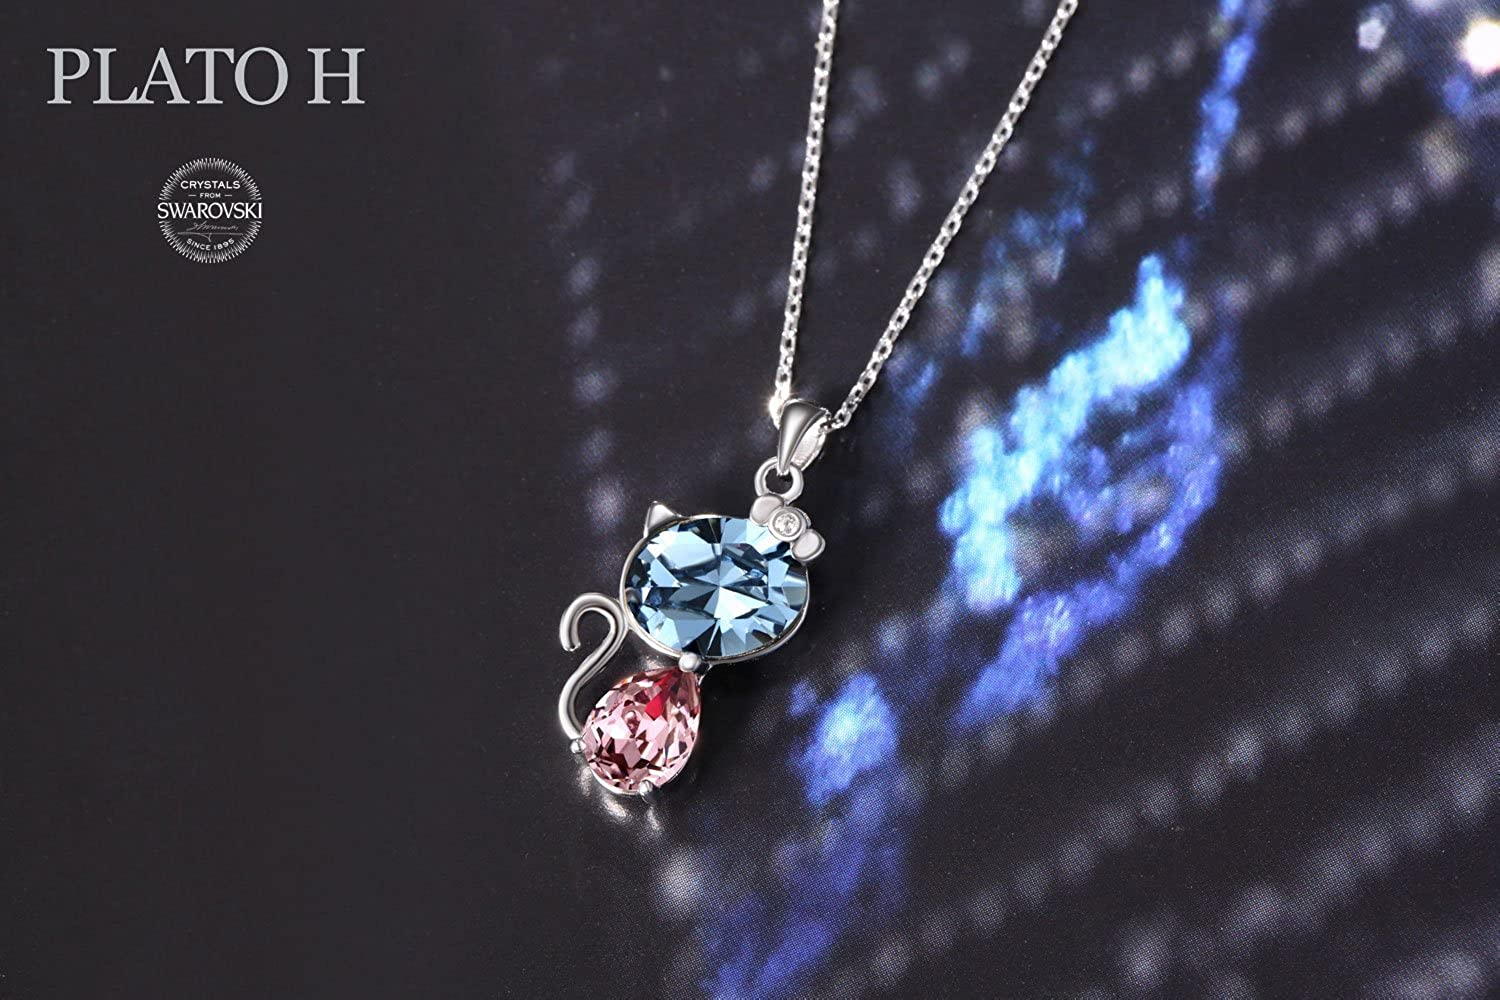 PLATO H Blue Lucky Cat Crystal Necklace with Swarovski Crystal 925 Sterling Silver Pretty Cat Pendant Necklace Cut Kitty Crystal Necklace Pure Jewelry Best Romantic for Birthday Gift